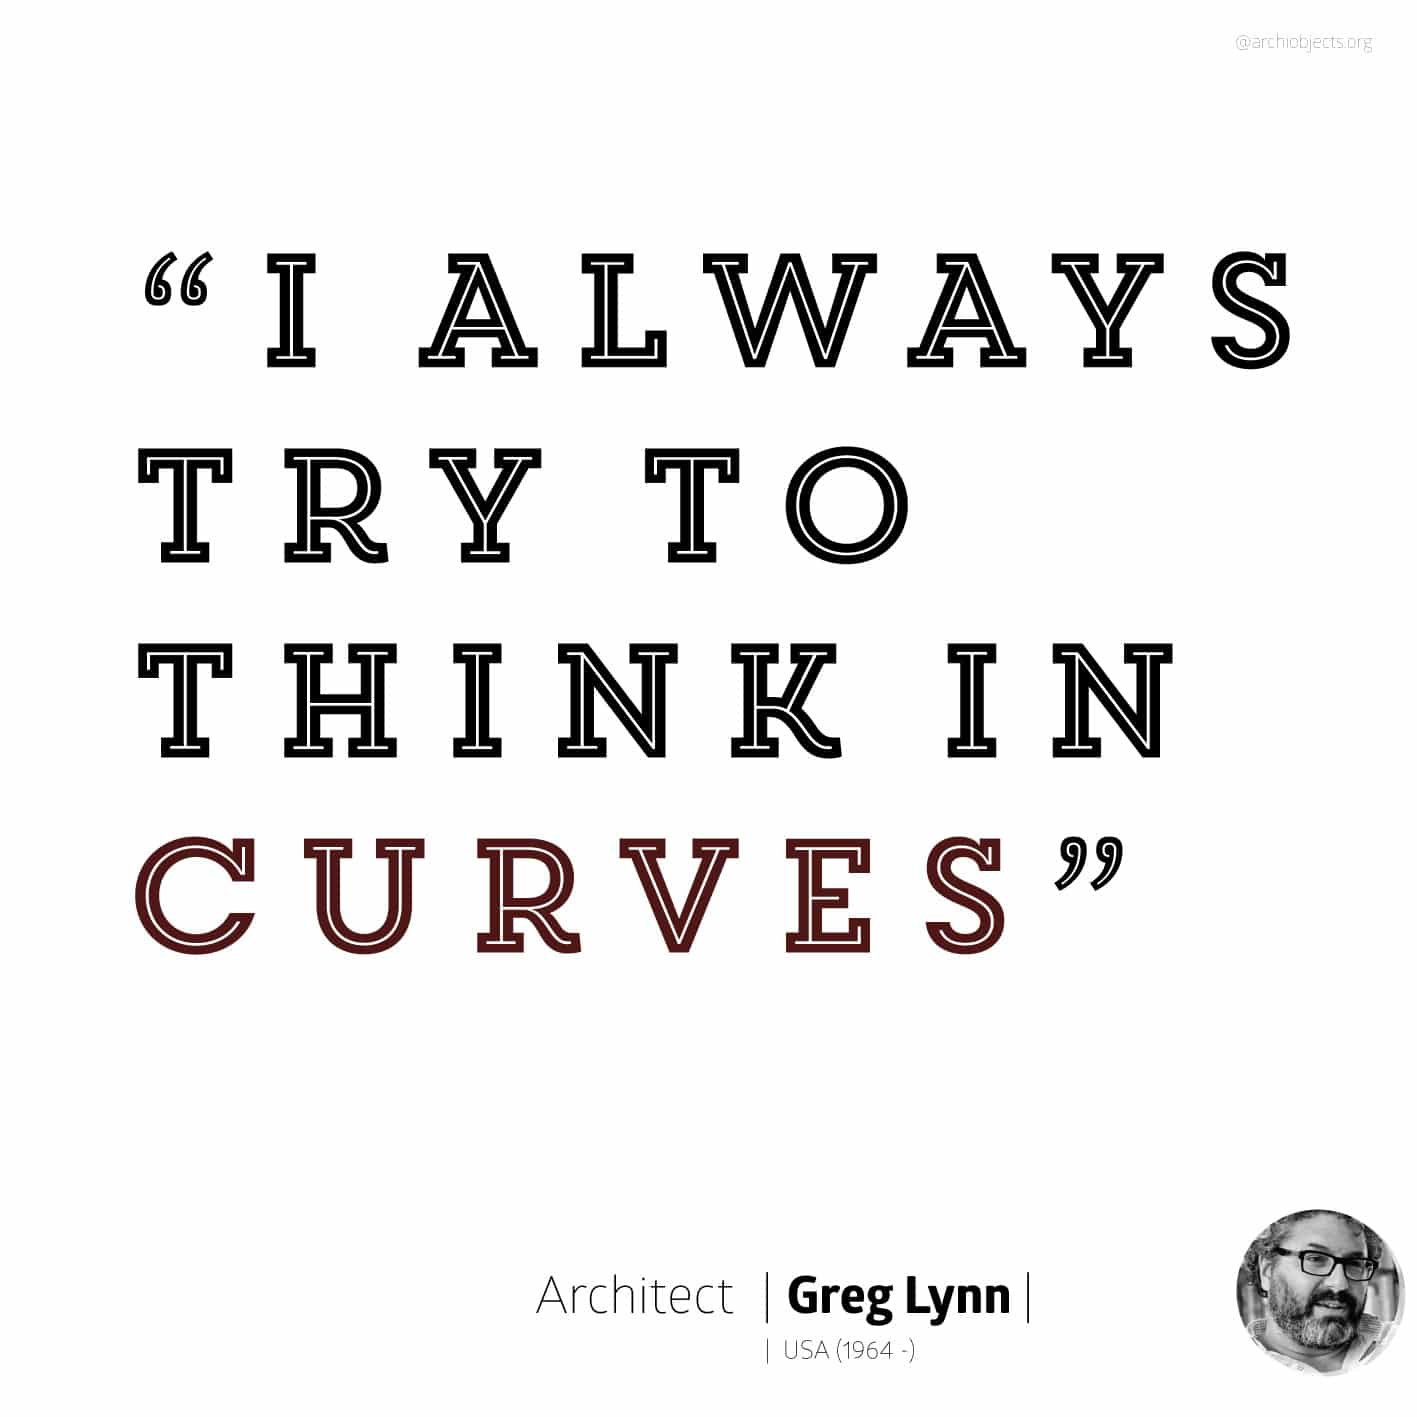 greg lynn quote Architectural Quotes - Worth spreading Architects' voice